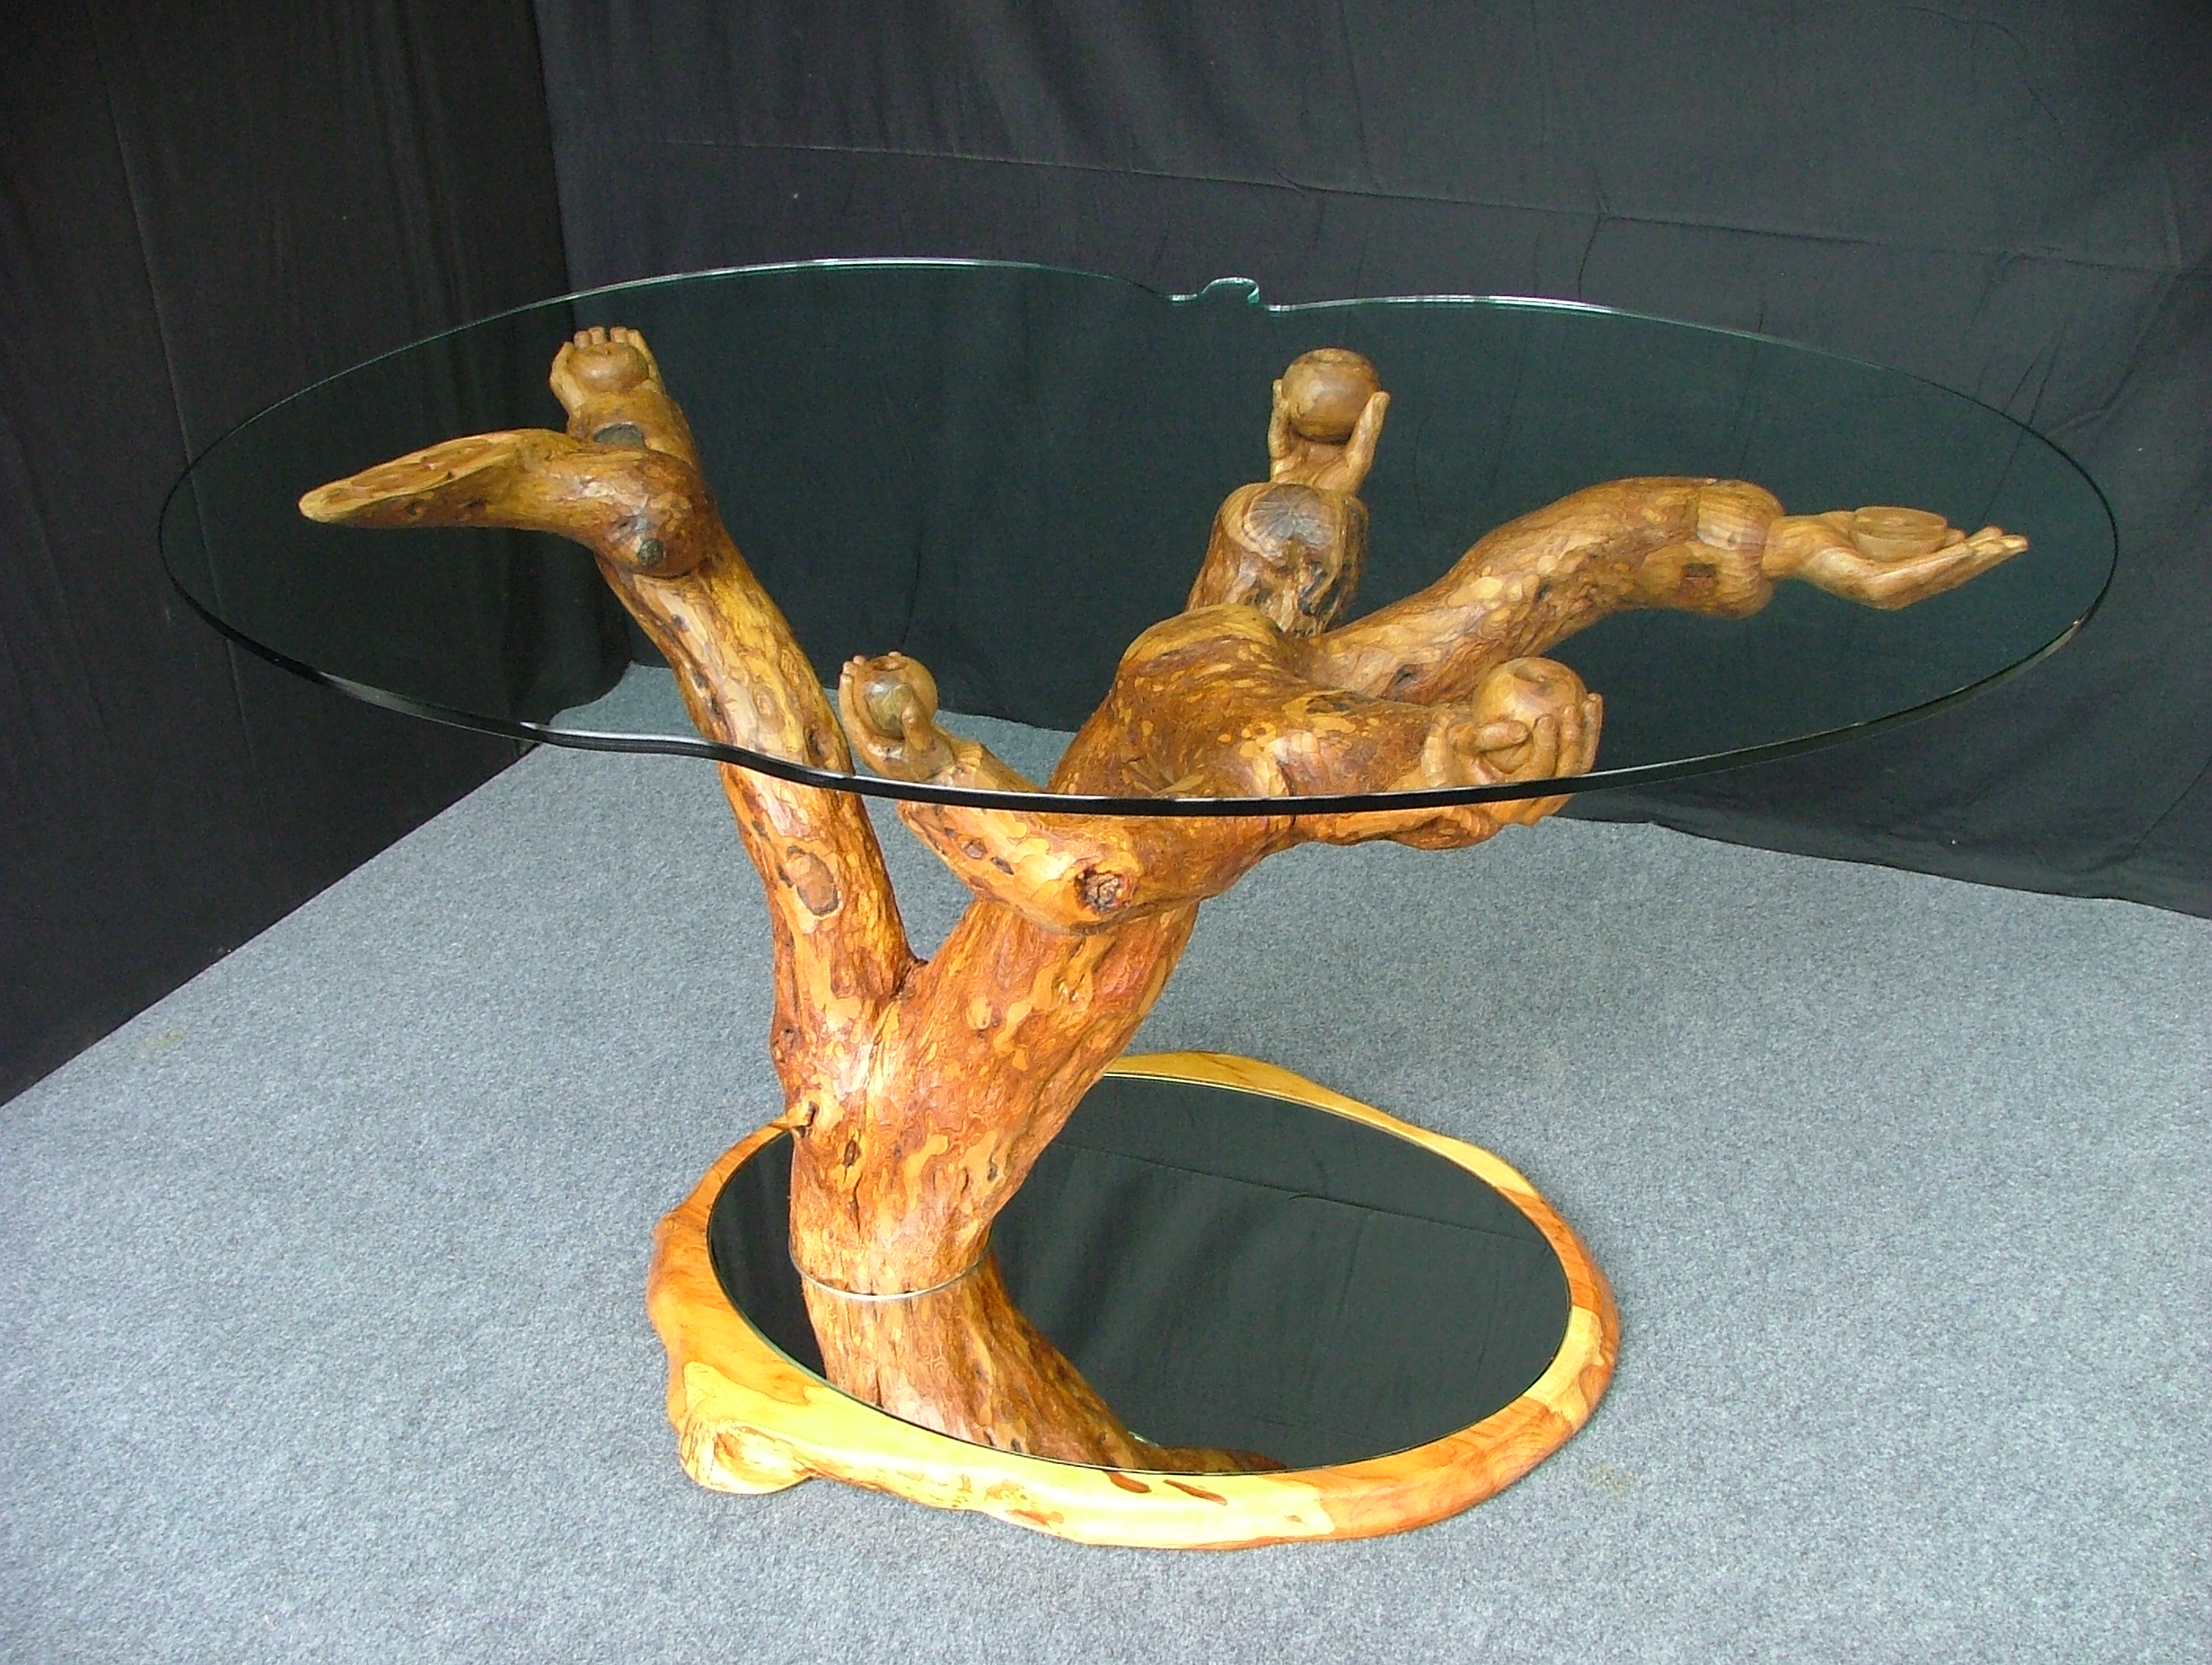 Galerie sculptures contemporaines - Table en verre sur un pommier